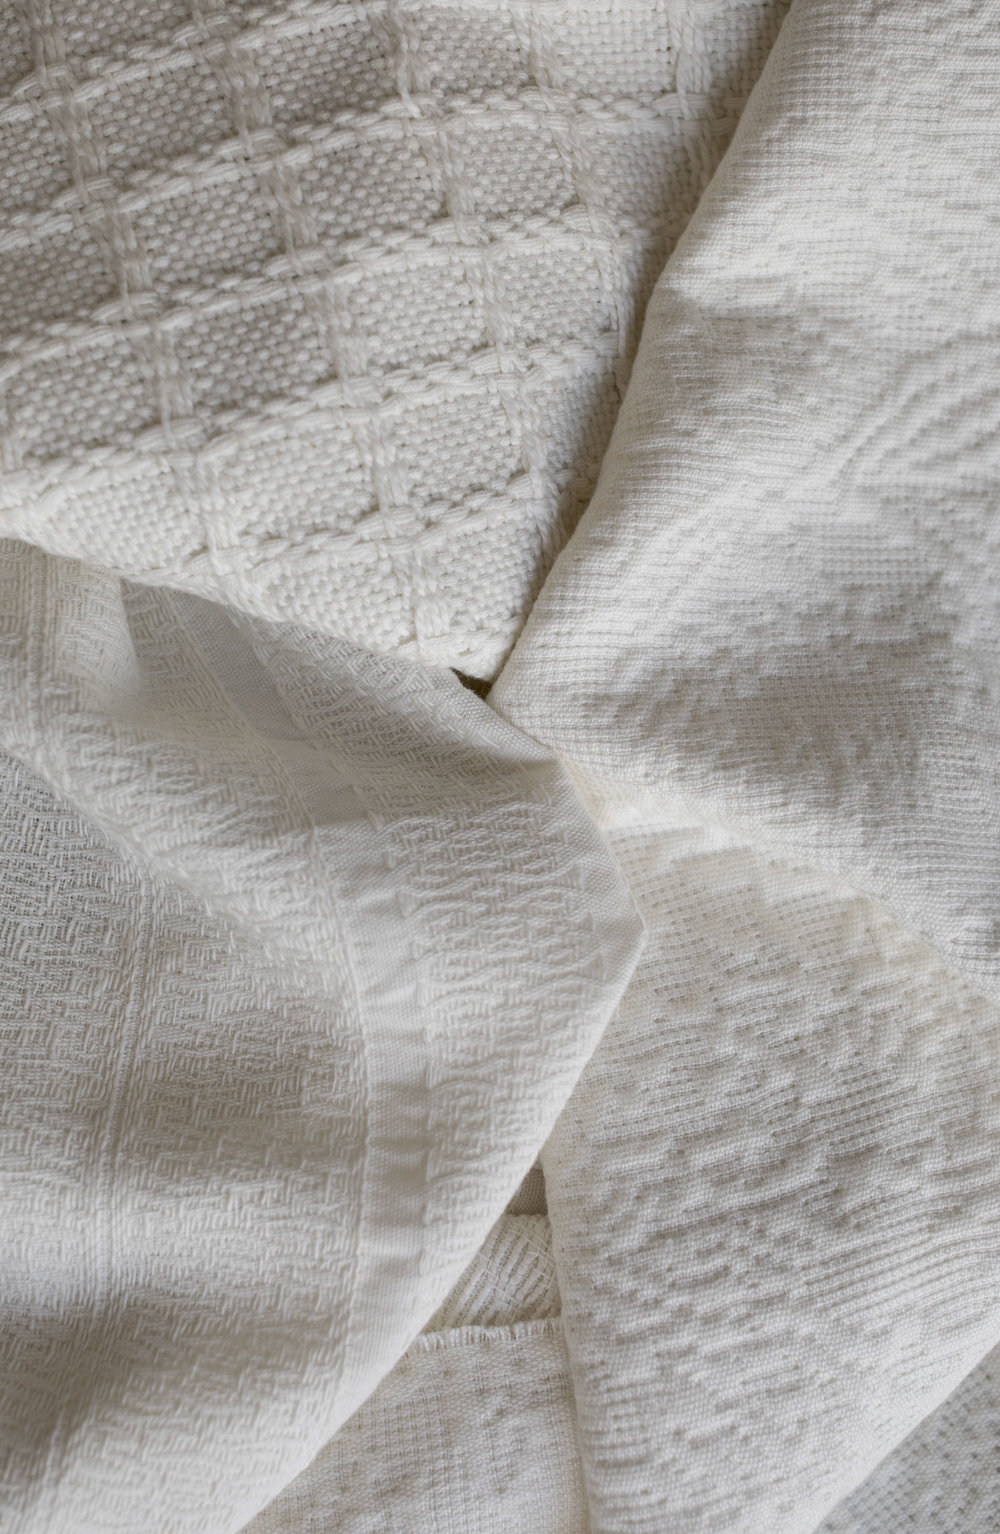 Organic cotton can come in a wide variety of different woven styles, produced by our artisan partners in India.